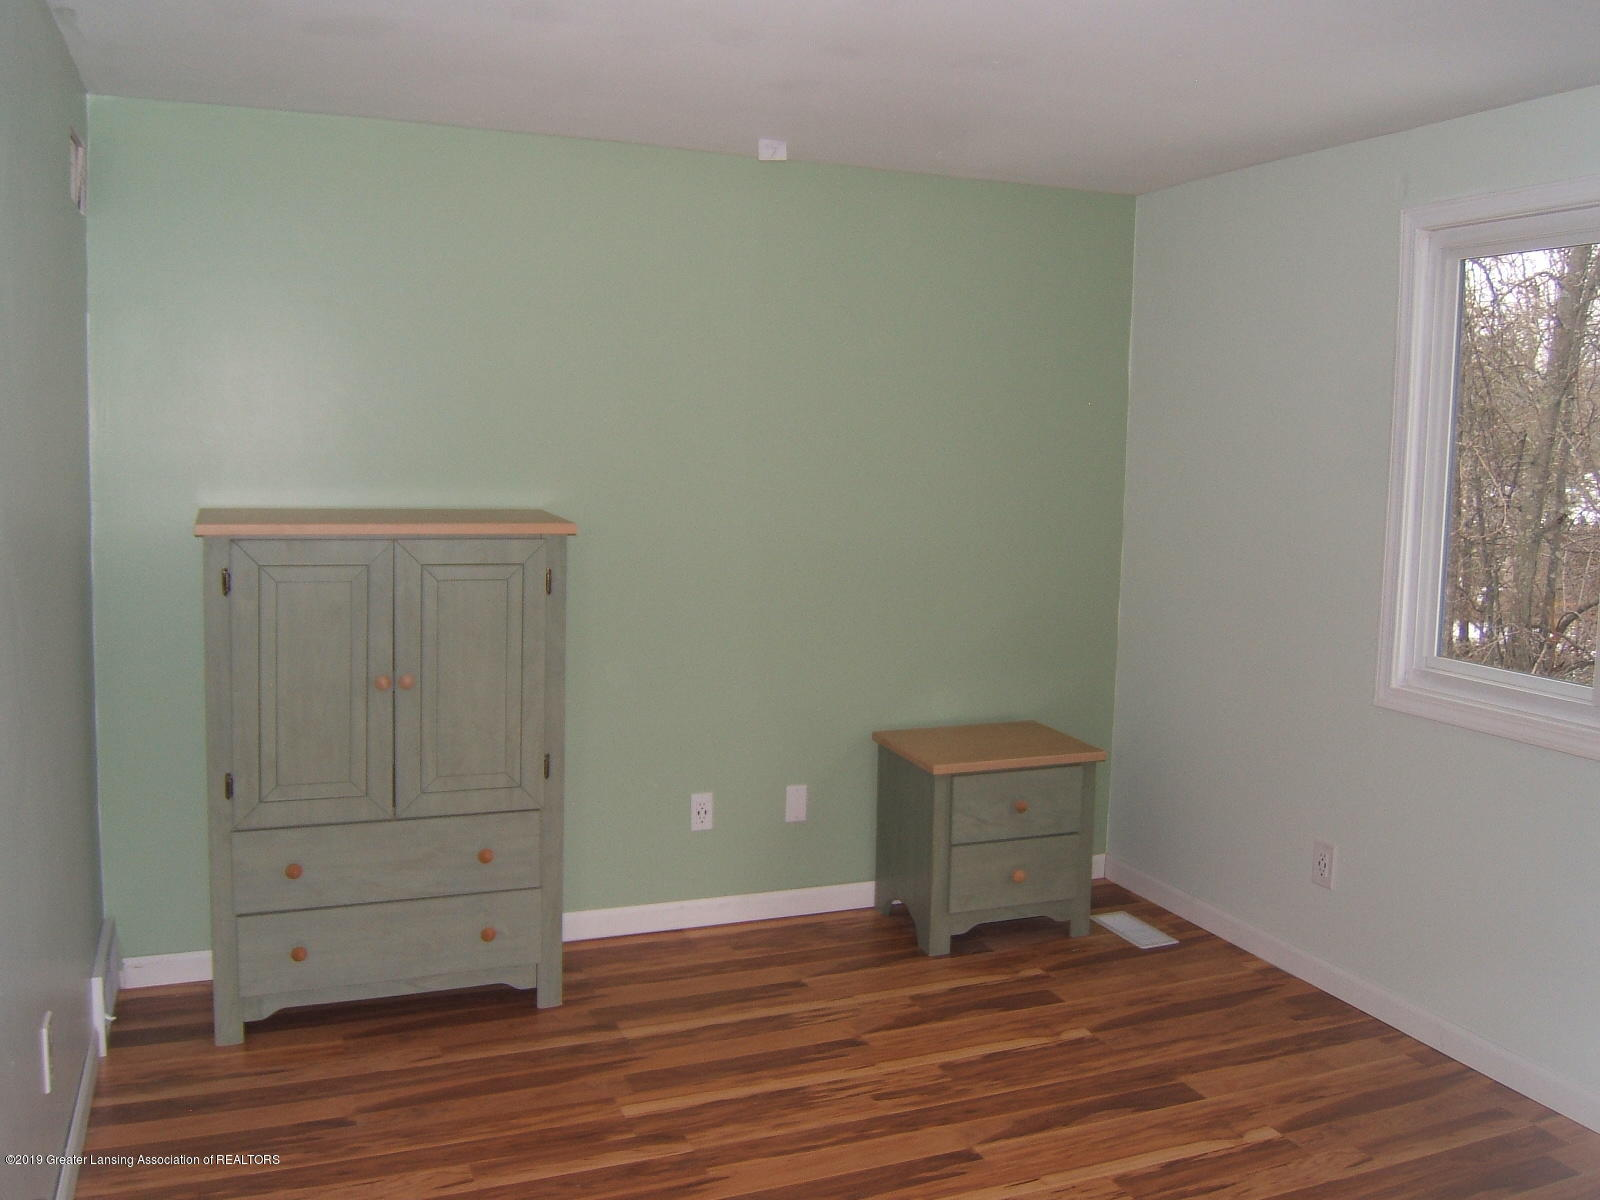 1002 Touraine Ave - Bedroom - 17